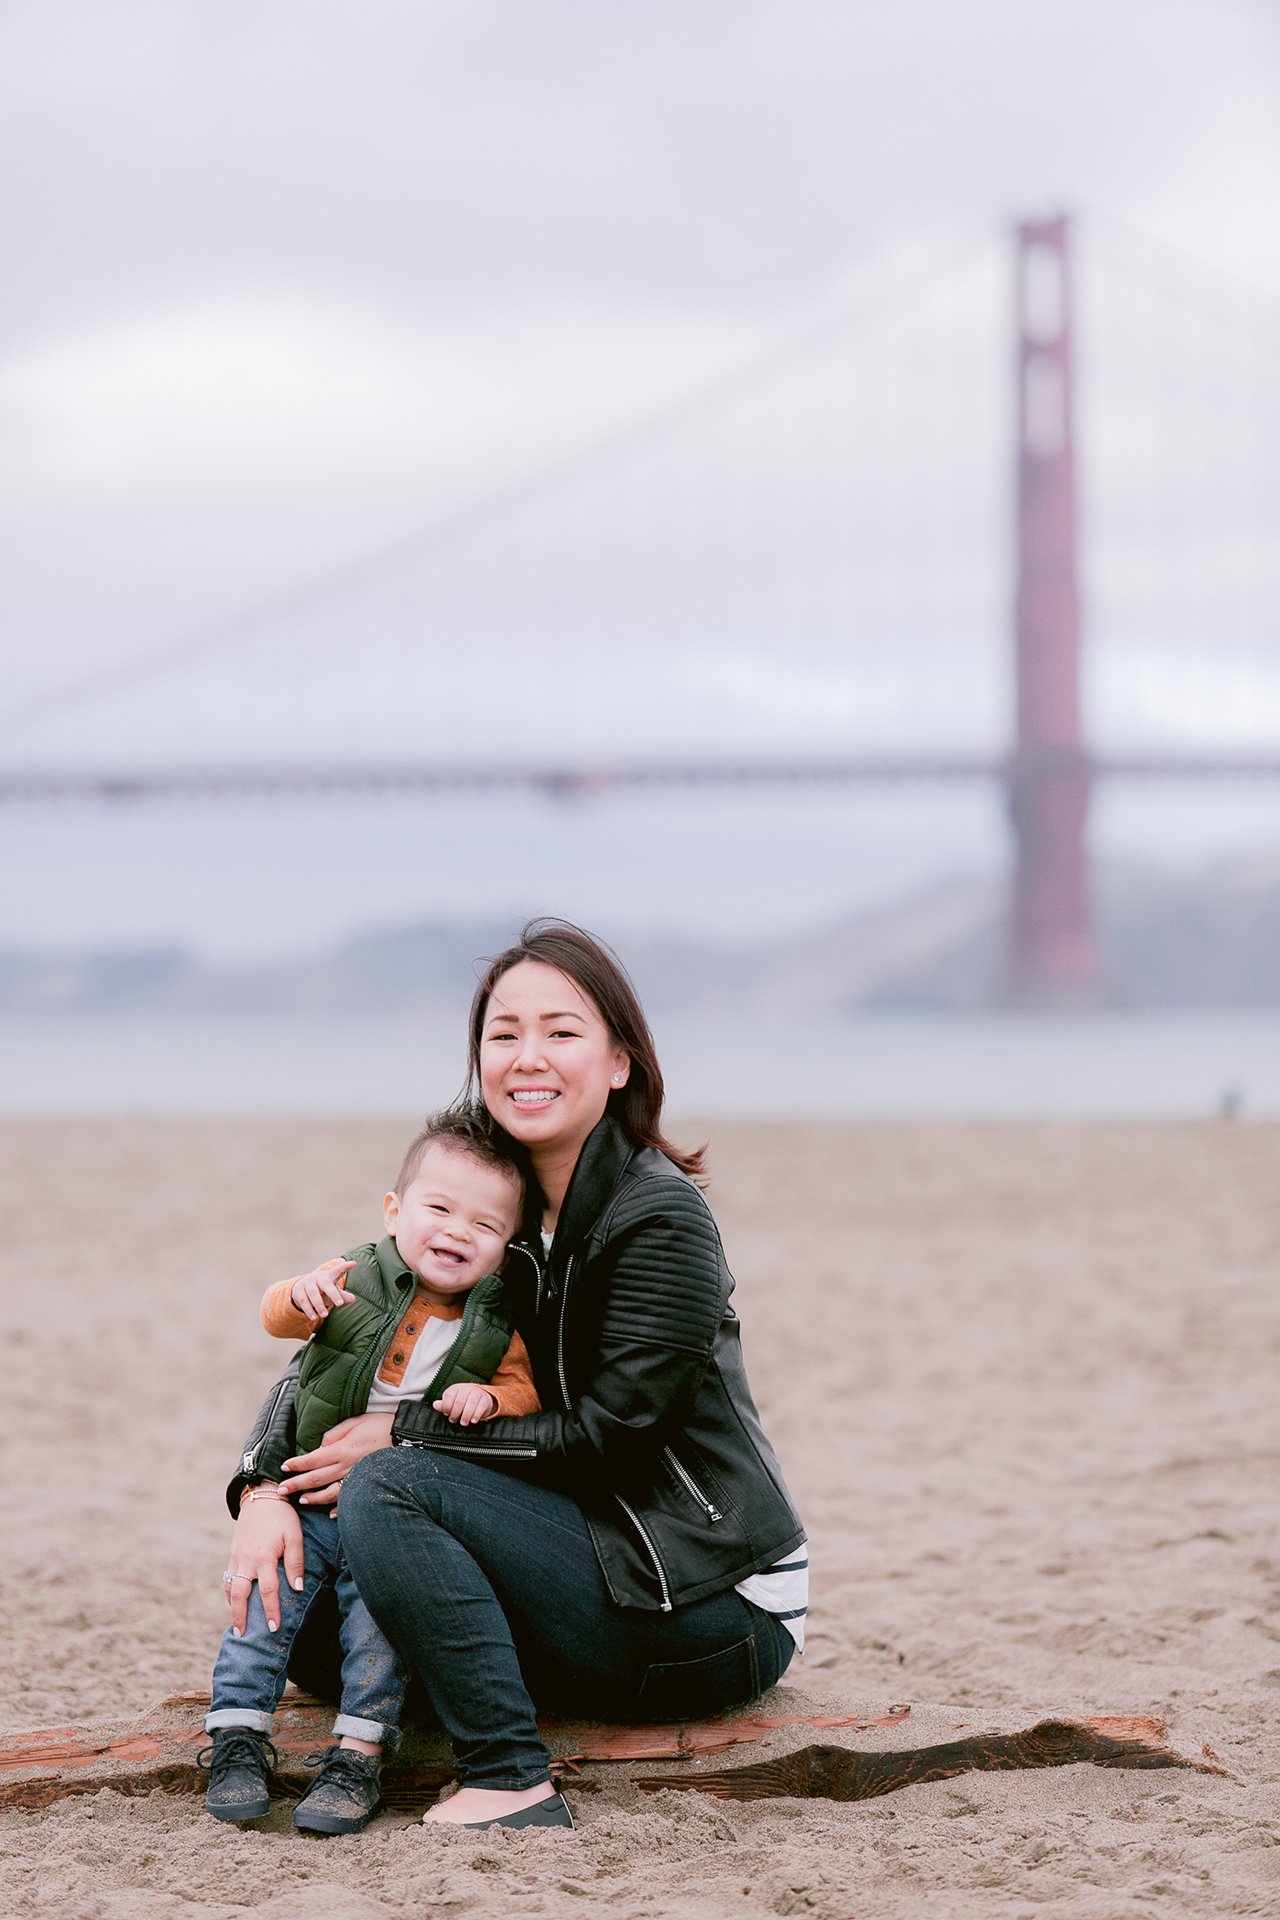 San_Francisco_Children_Family_Portrait_005.jpg